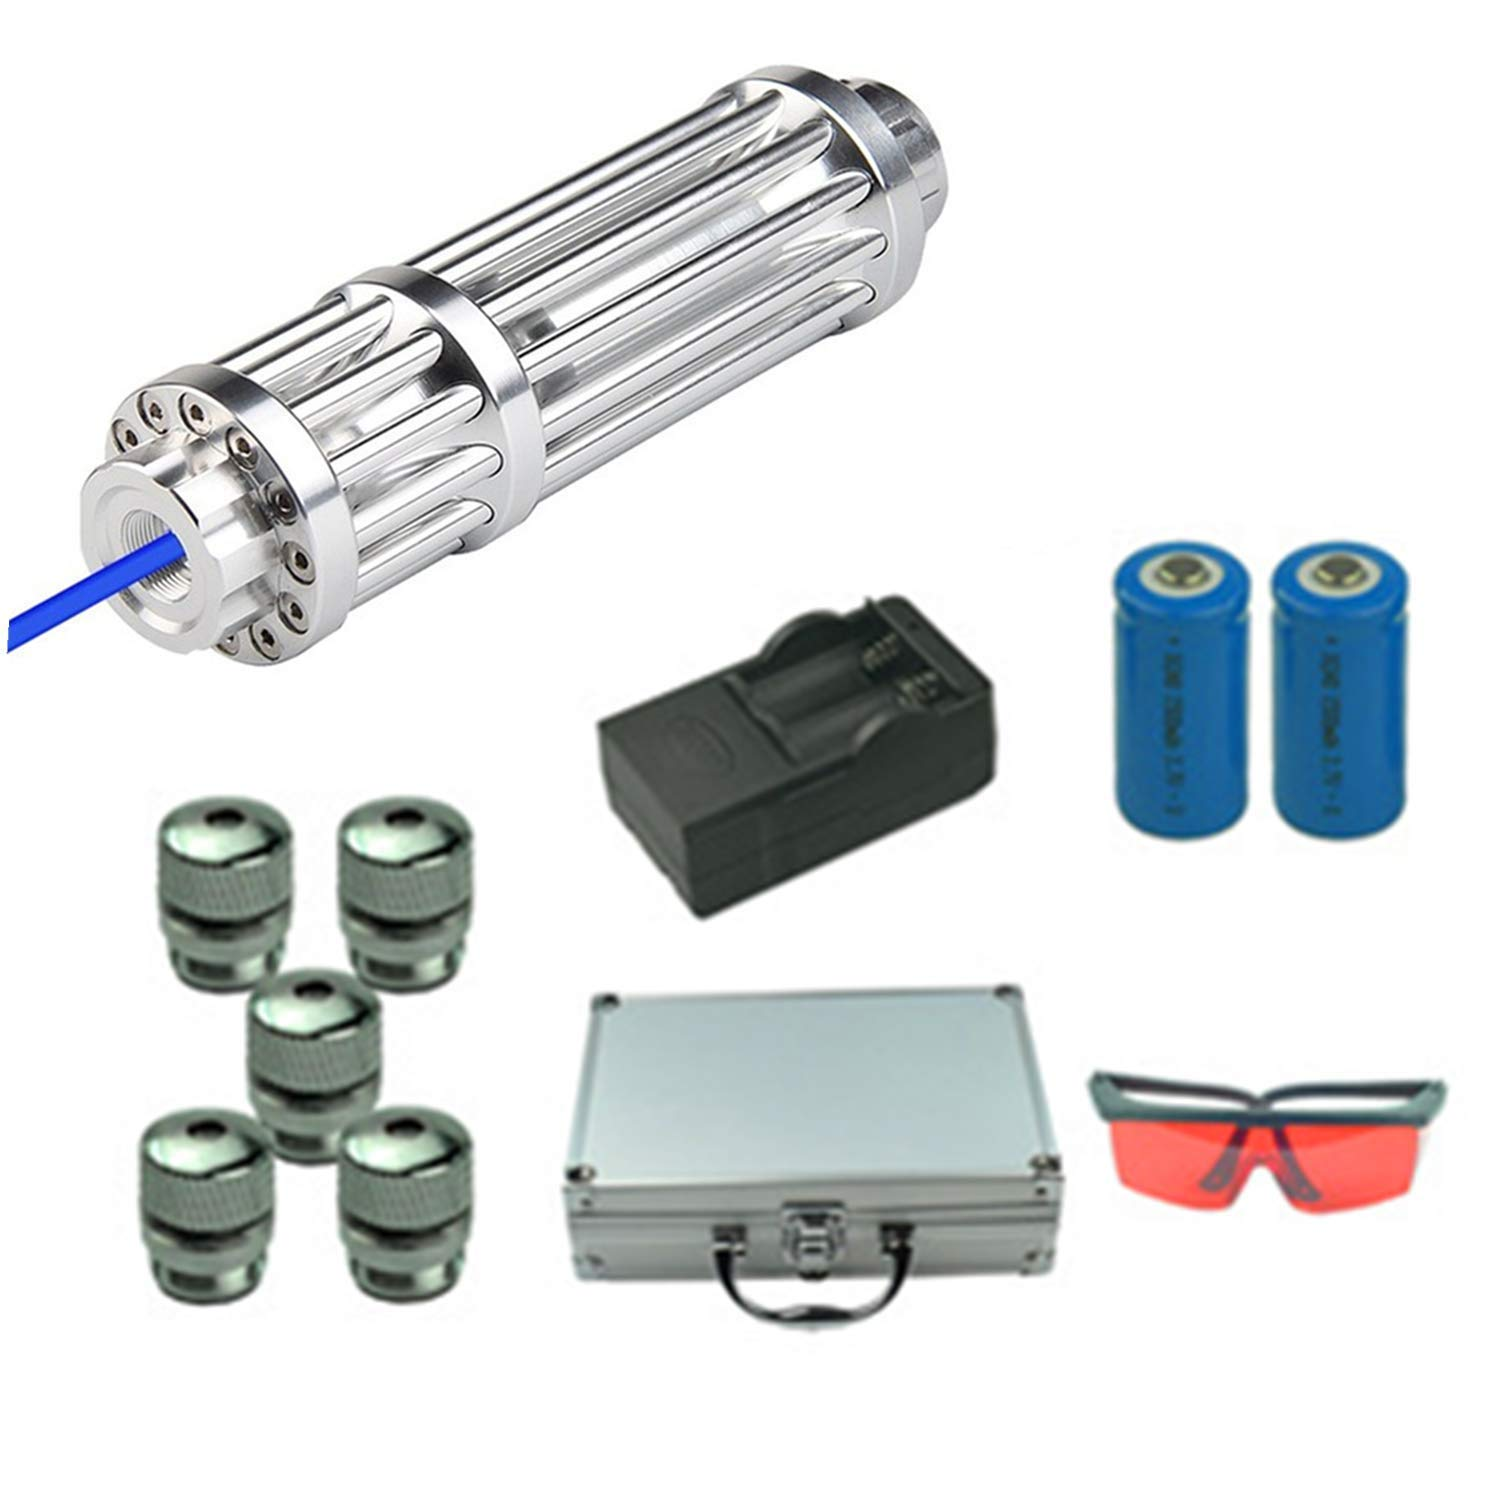 High Power Blu ray Tactical Pointer Flashlight Hunting Sight Camping Survival Mode and Astronomy College Laser Pet Toy Suit (Blu ray) (Blue)